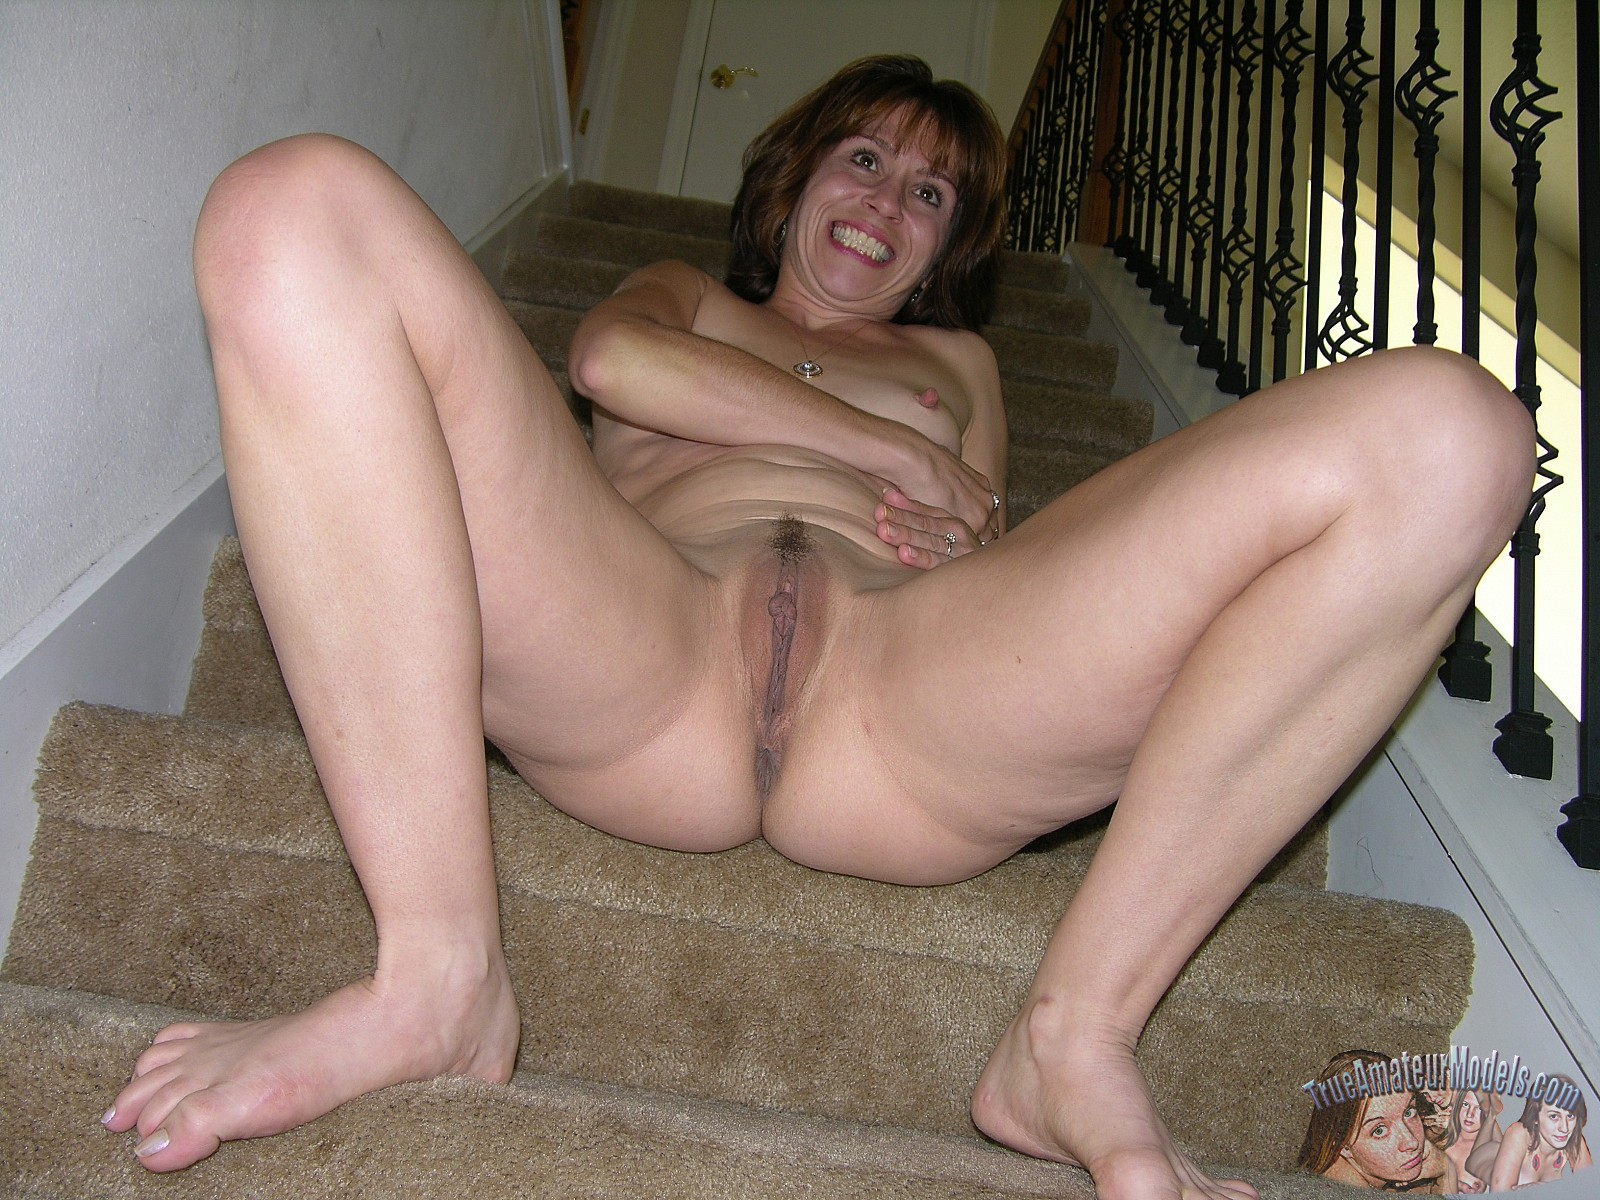 Hot nude amateur milfs xxx video